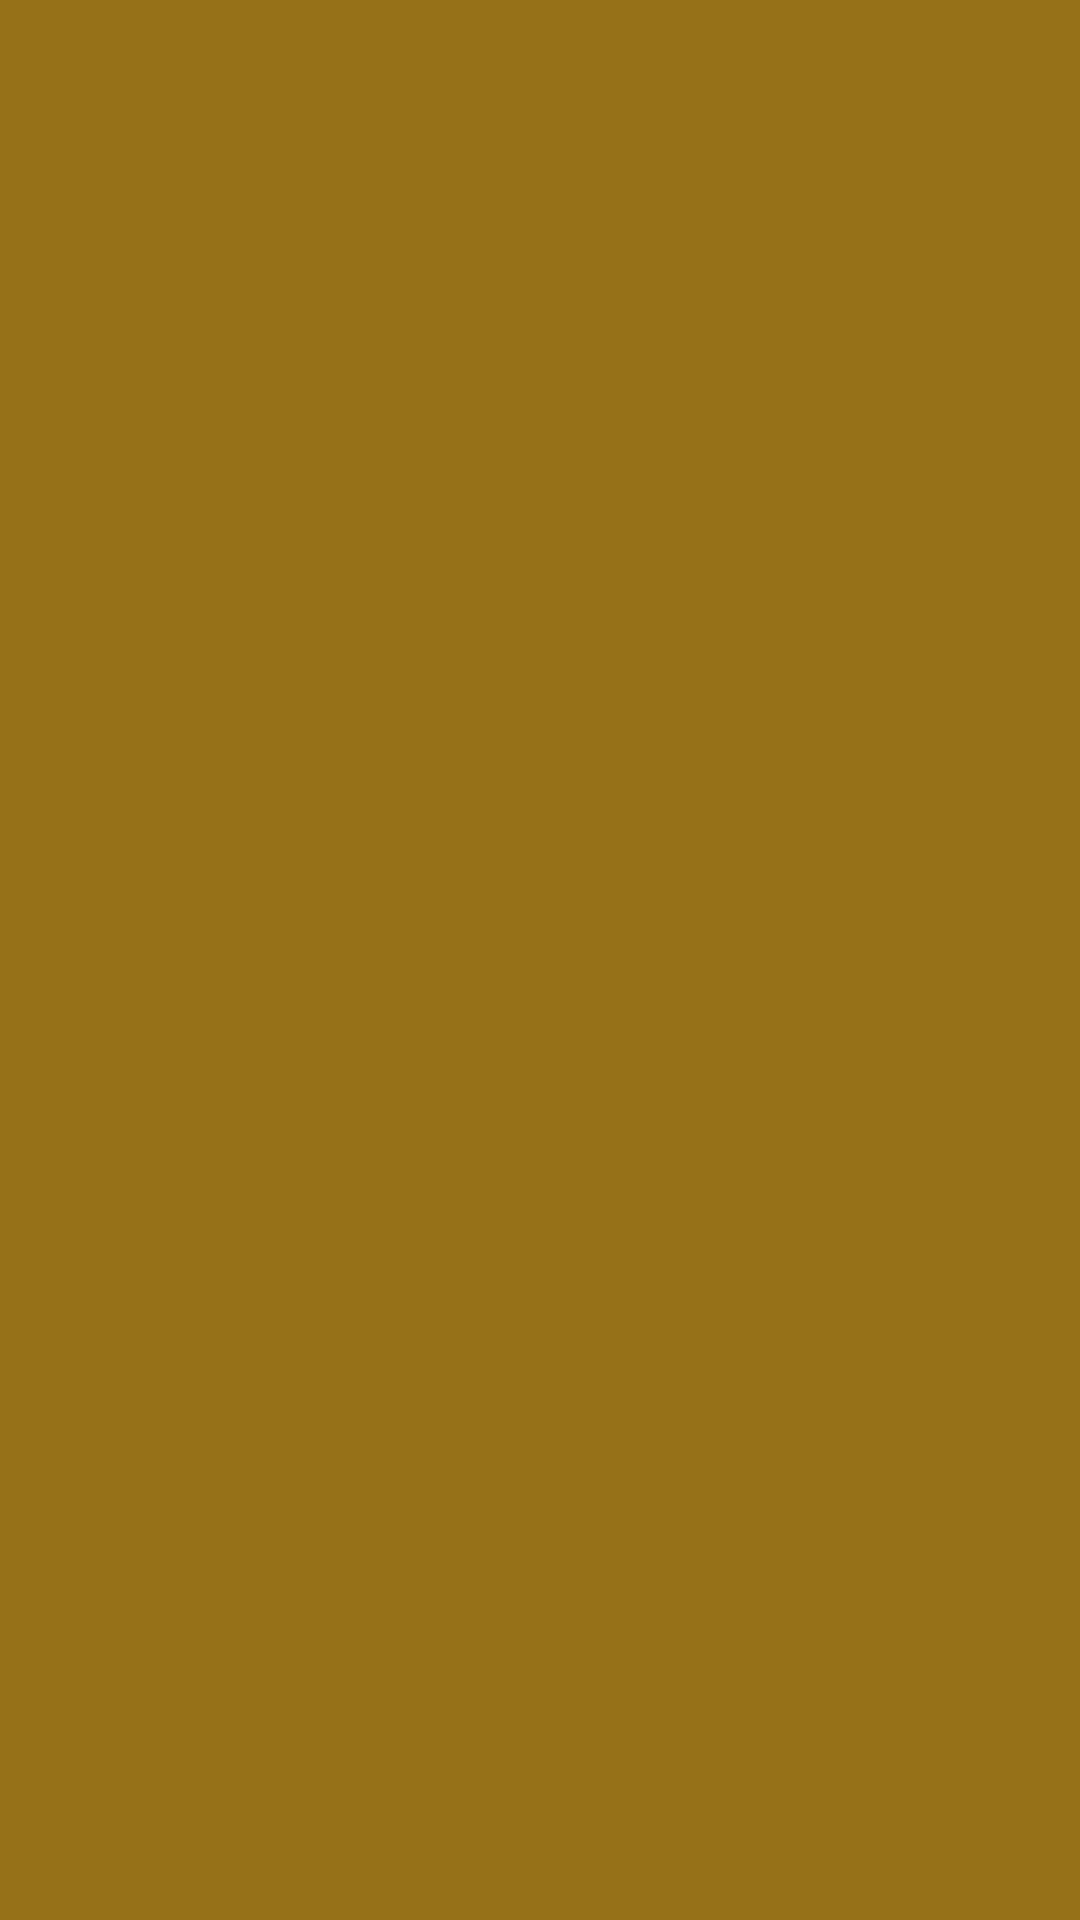 1080x1920 Sandy Taupe Solid Color Background